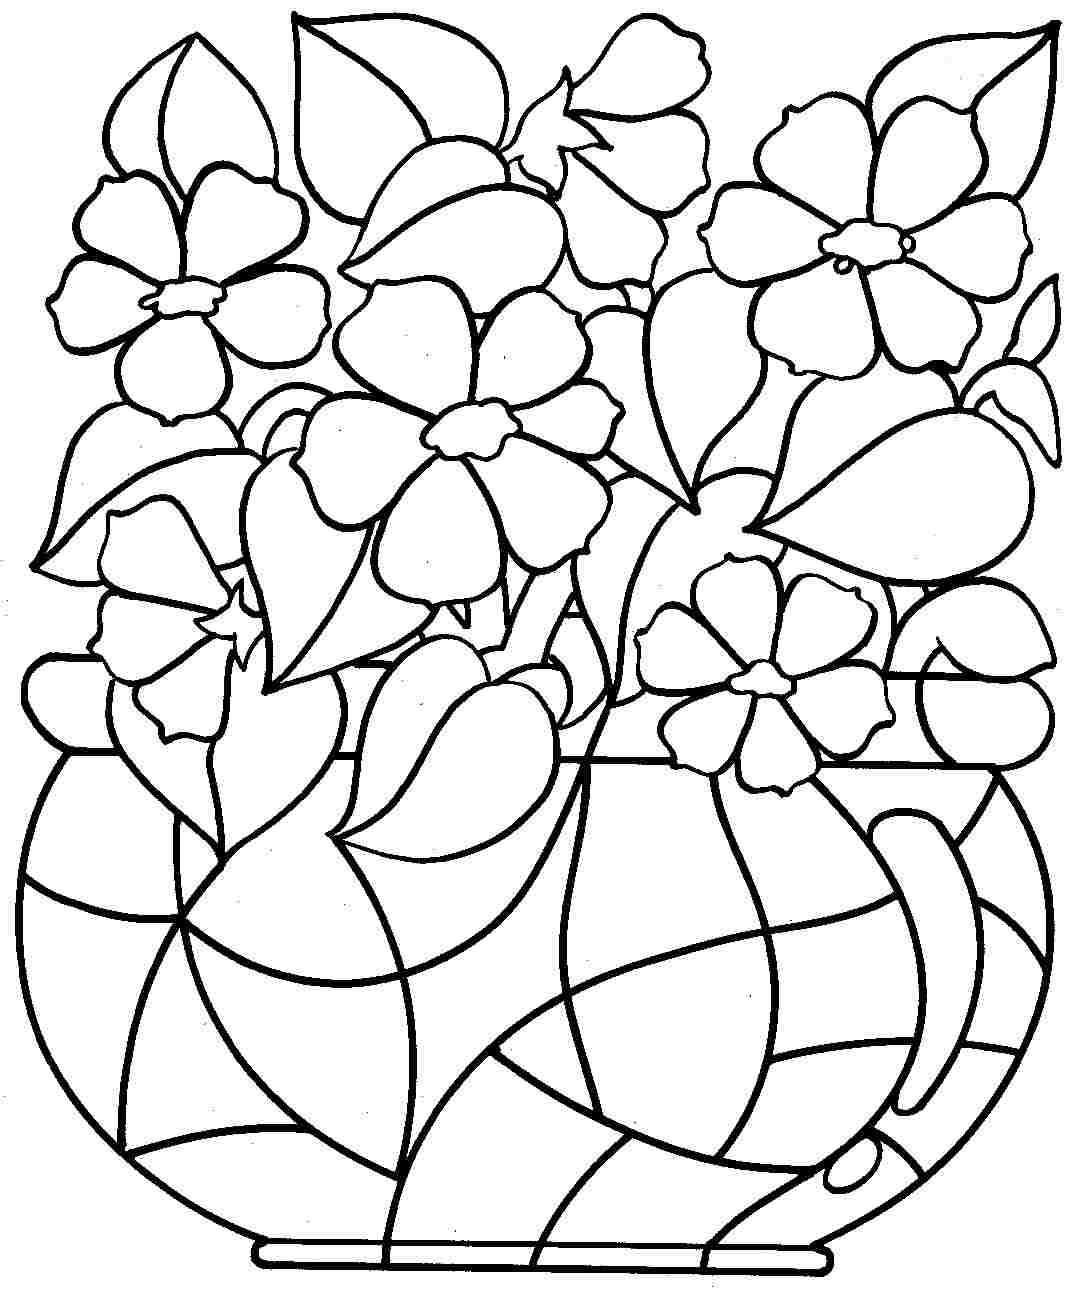 Flowers Coloring Pages Free Printable 20 Free Printable Flower Coloring Pages Images Free Coloring Pages